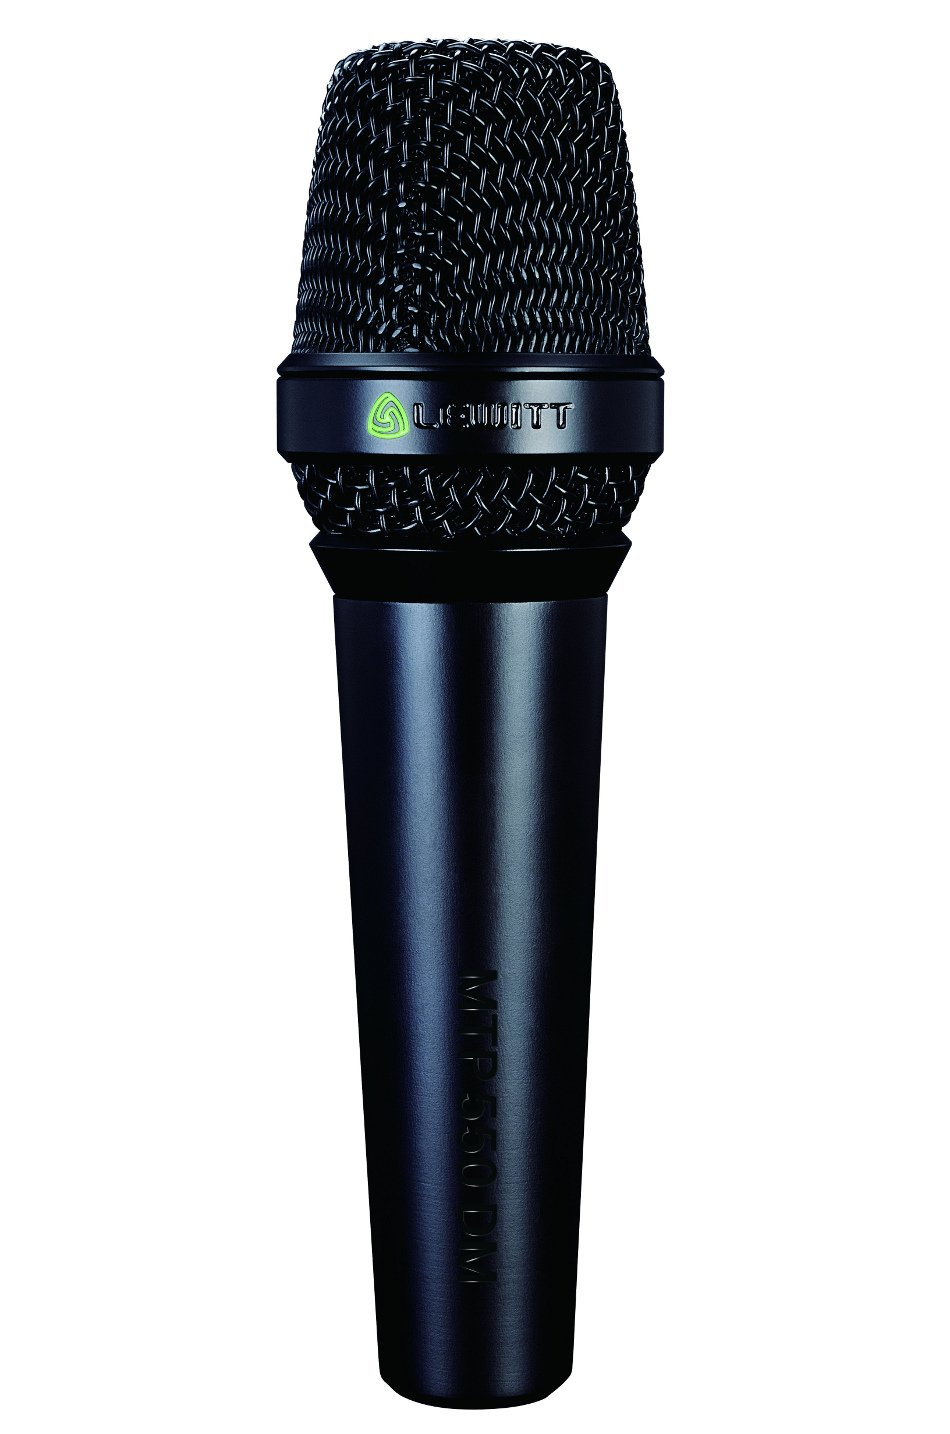 Handheld Dynamic Vocal Microphone w/ On-Off Switch